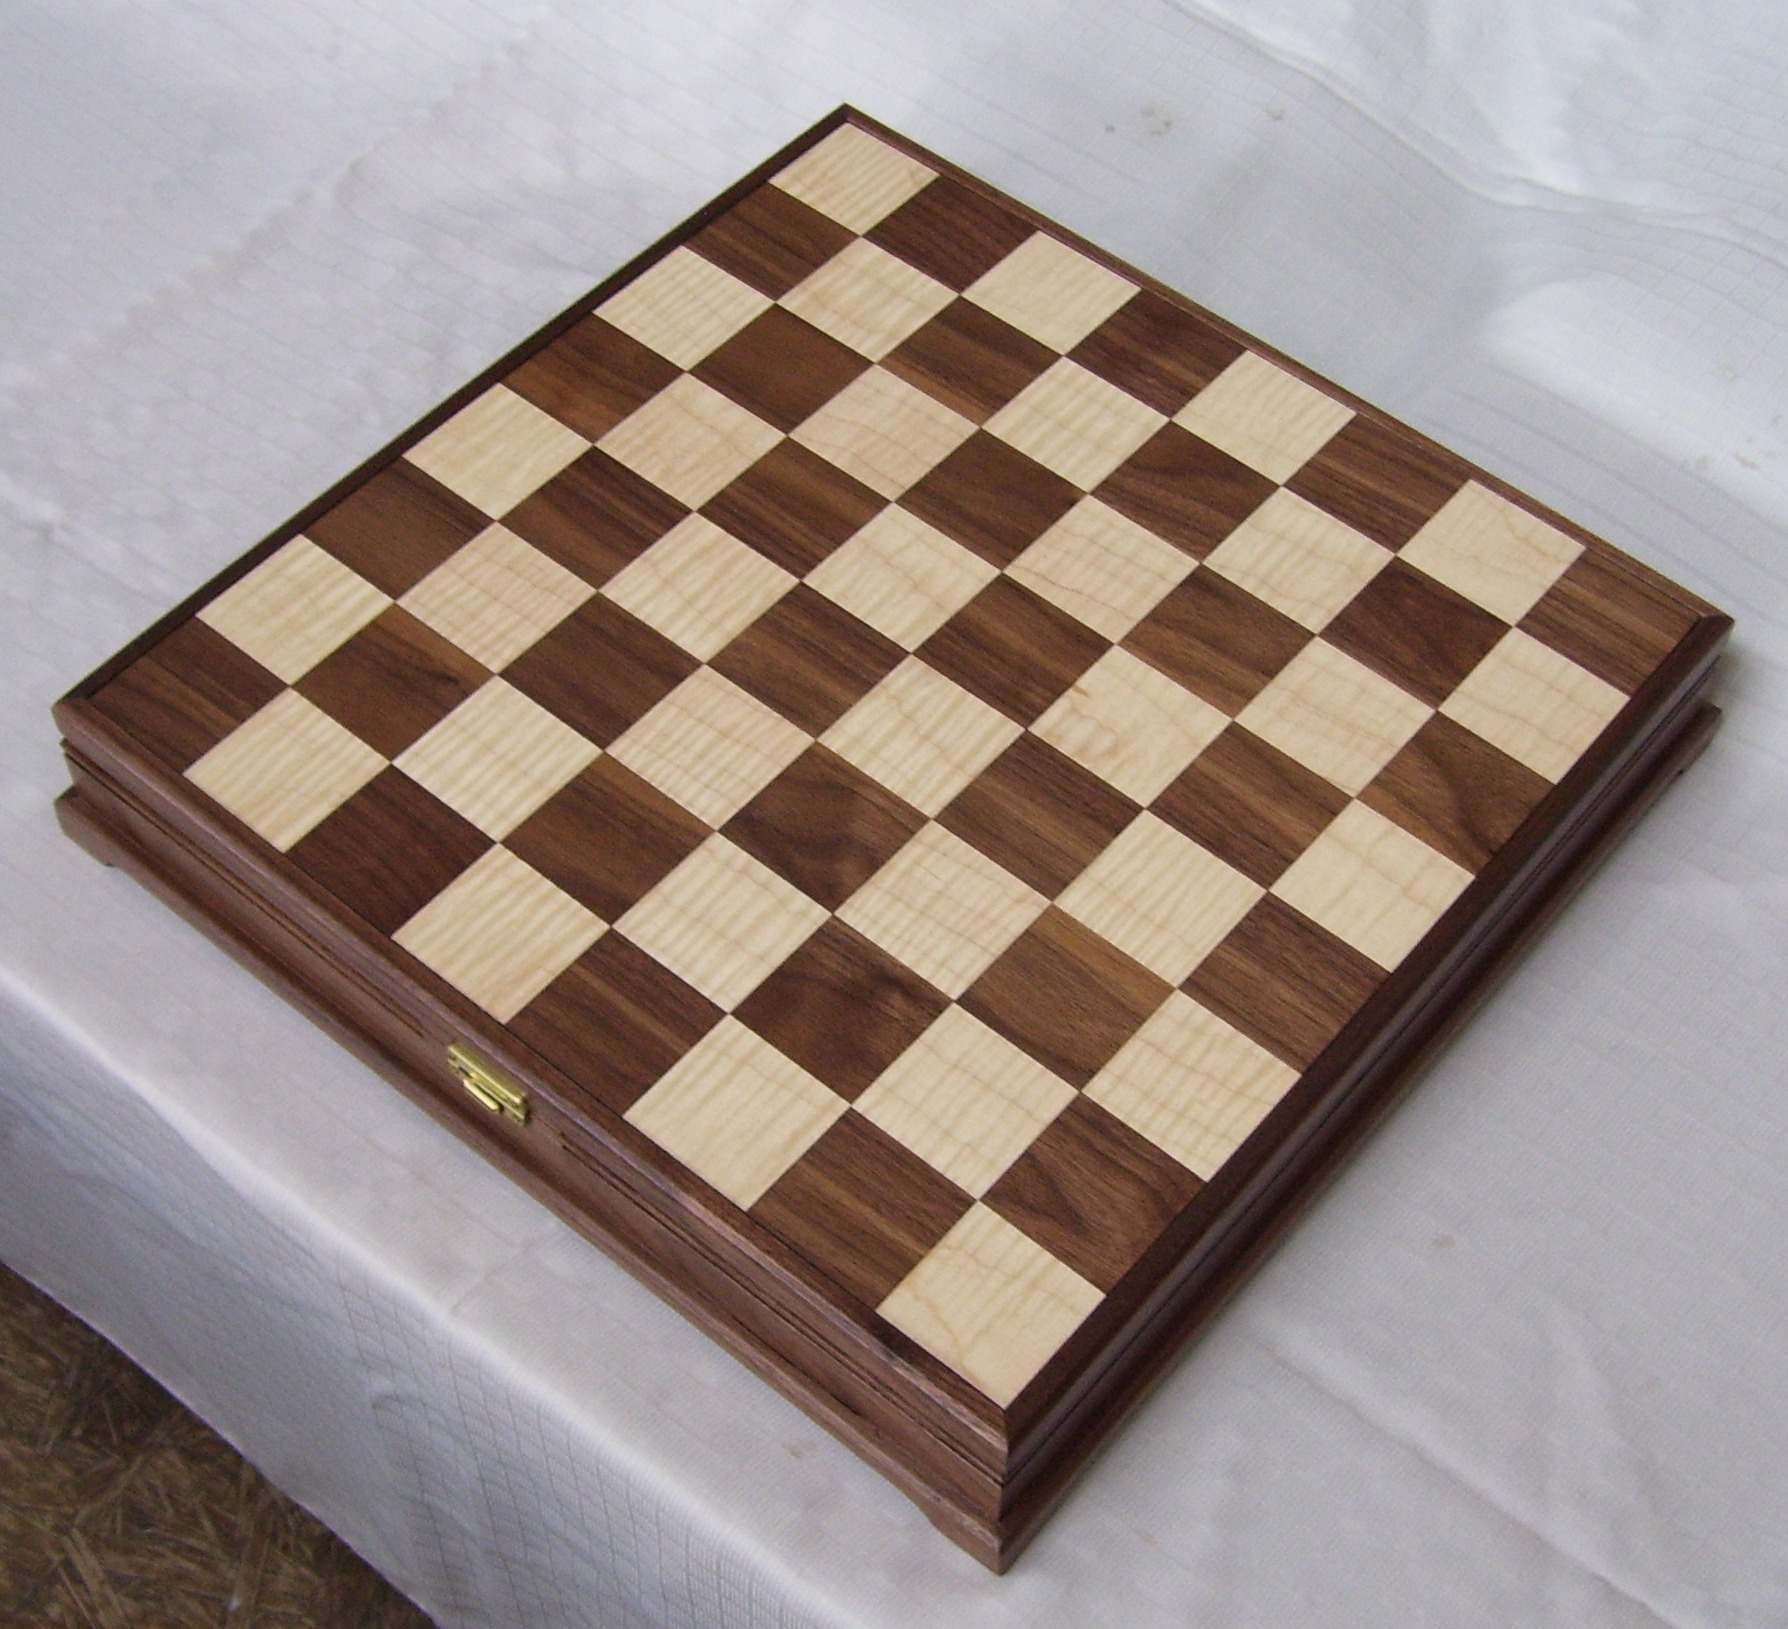 Chessboard with Storage